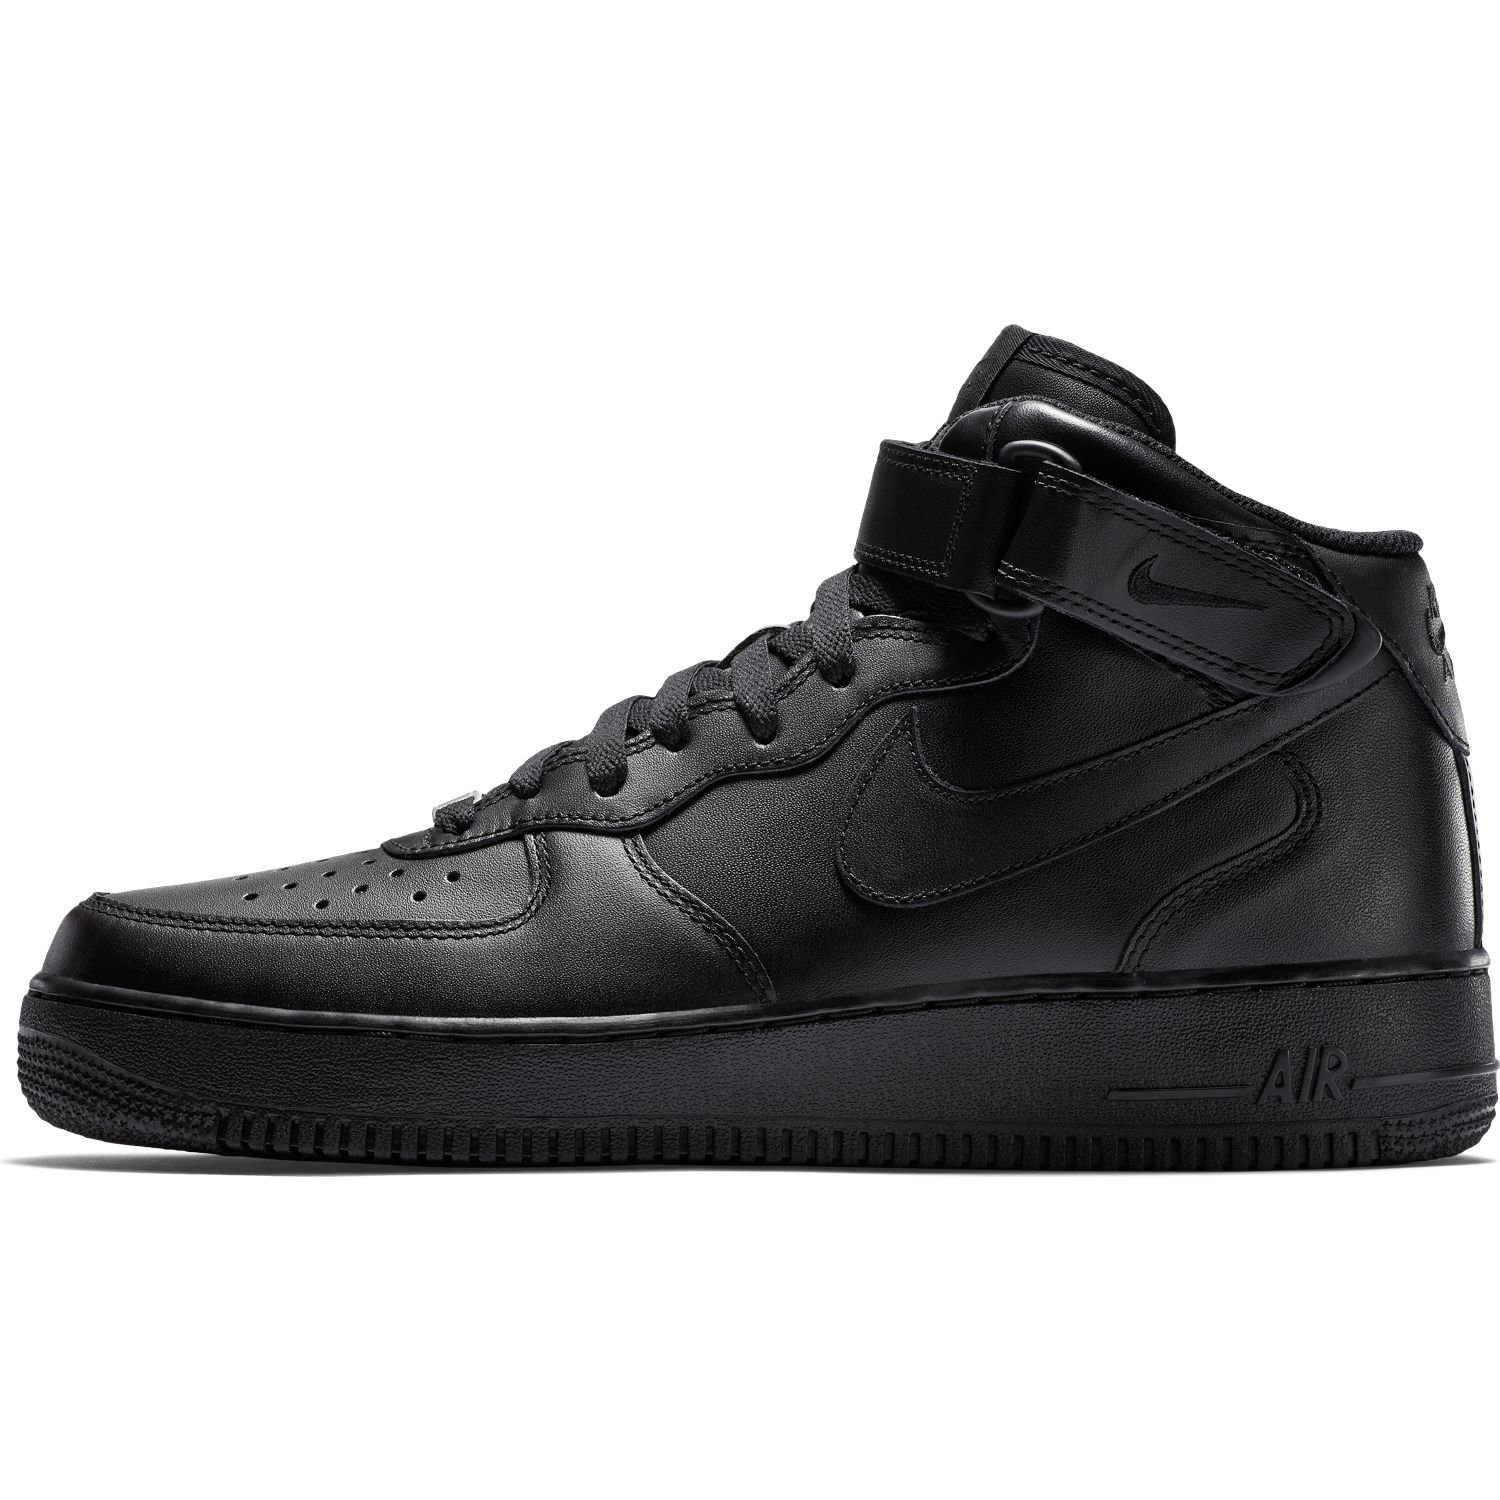 BUTY MĘSKIE NIKE AIR FORCE 1 MID 07 ALL BLACK 315123 001